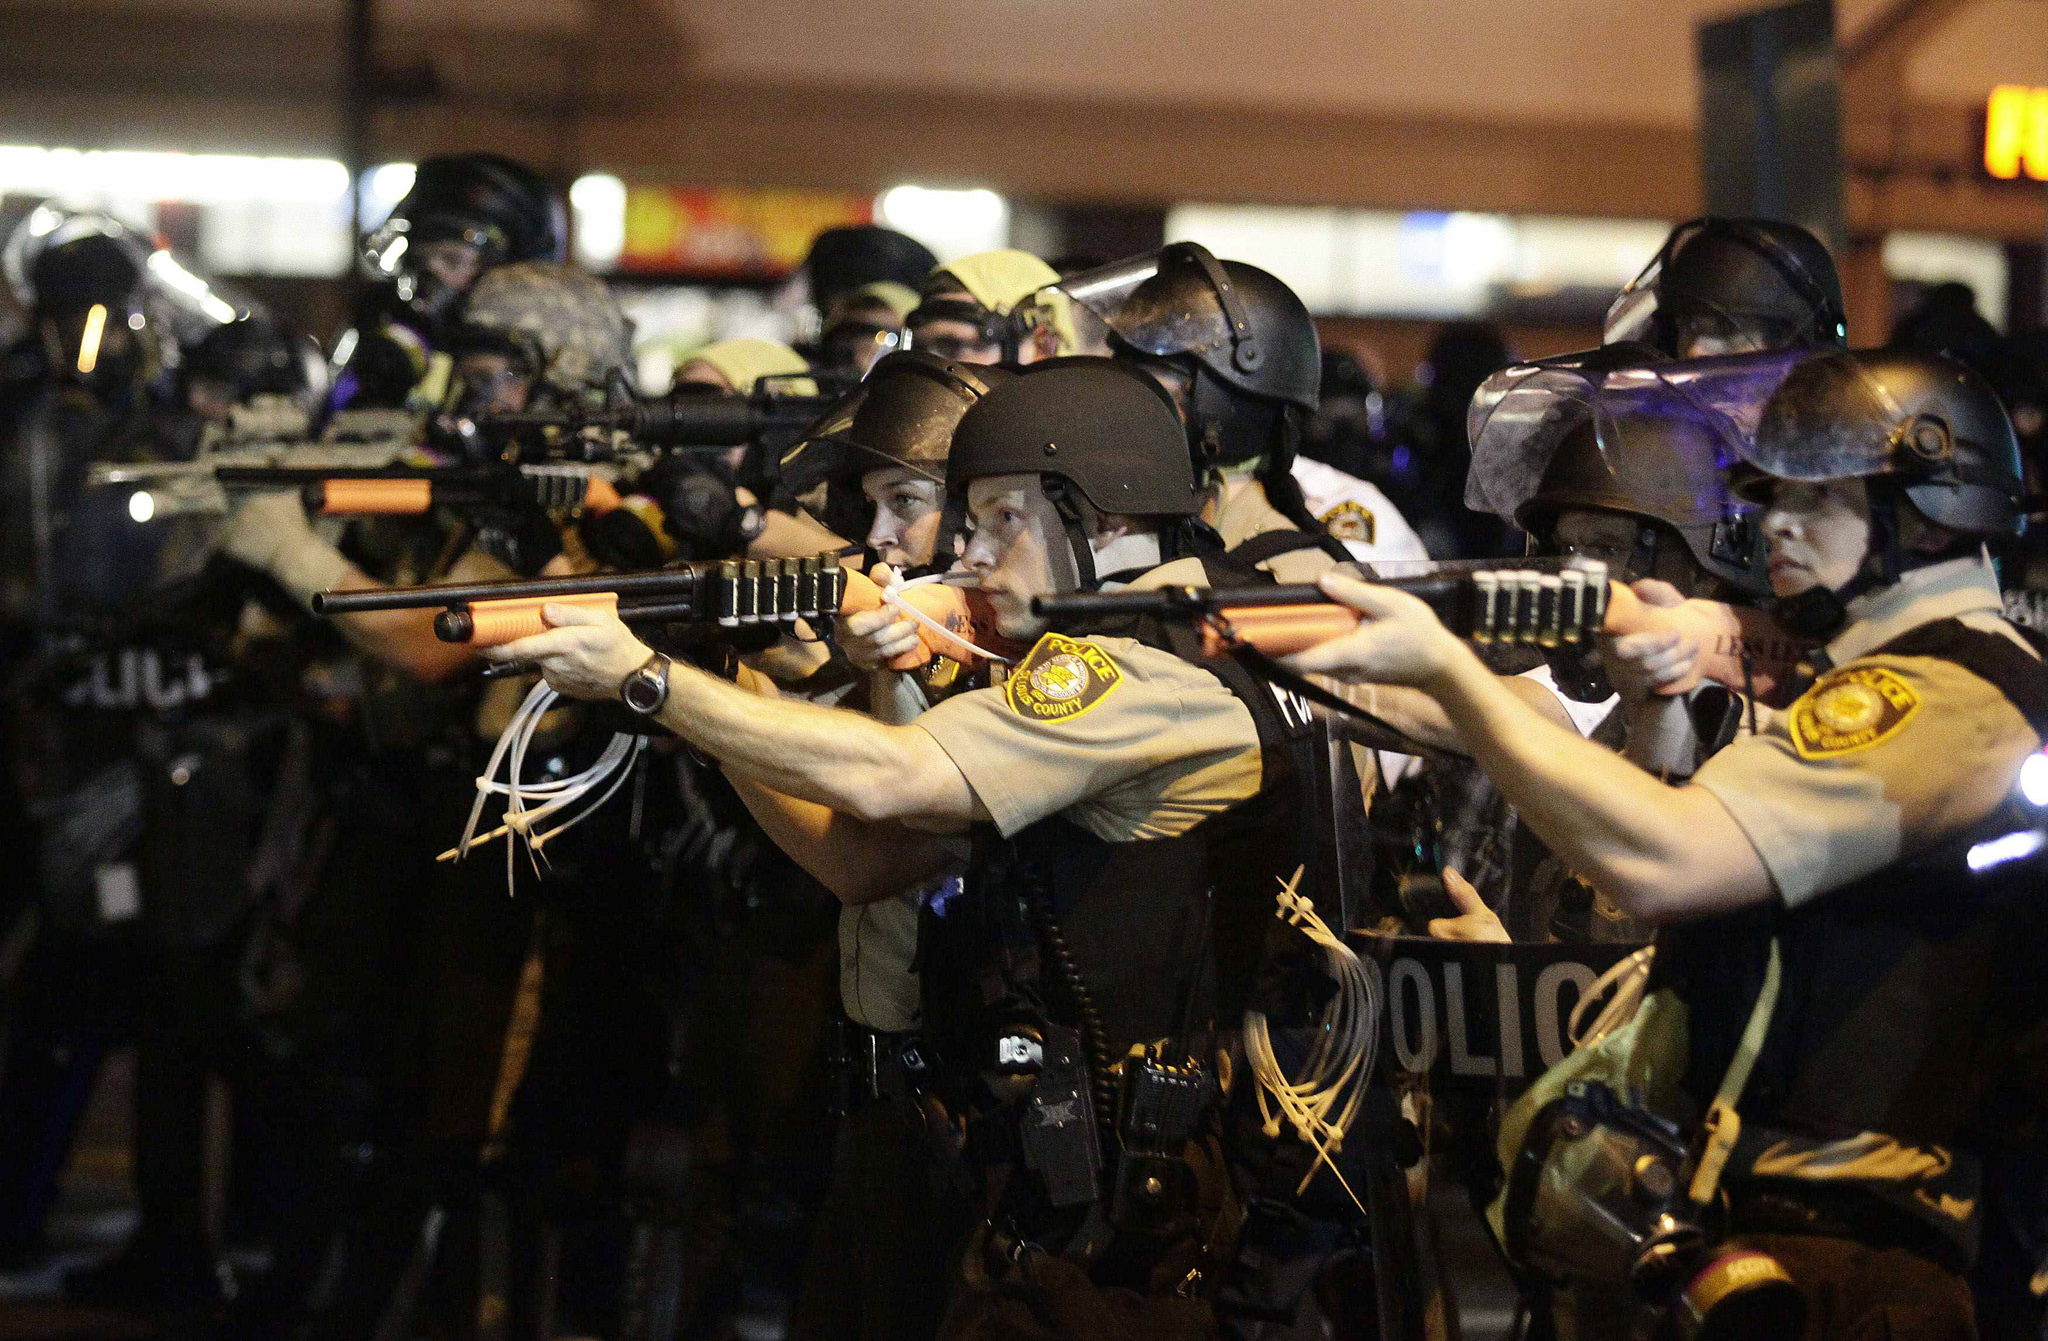 Police officers point their weapons at demonstrators protesting against the shooting death of Michael Brown in Ferguson, Missouri...Police officers point their weapons at demonstrators protesting against the shooting death of Michael Brown in Ferguson, Missouri August 18, 2014. Police fired tear gas and stun grenades at protesters on Monday after days of unrest sparked by the fatal shooting of unarmed black teenager Michael Brown by a white policeman. REUTERS/Joshua Lott (UNITED STATES - Tags: CRIME LAW CIVIL UNREST)